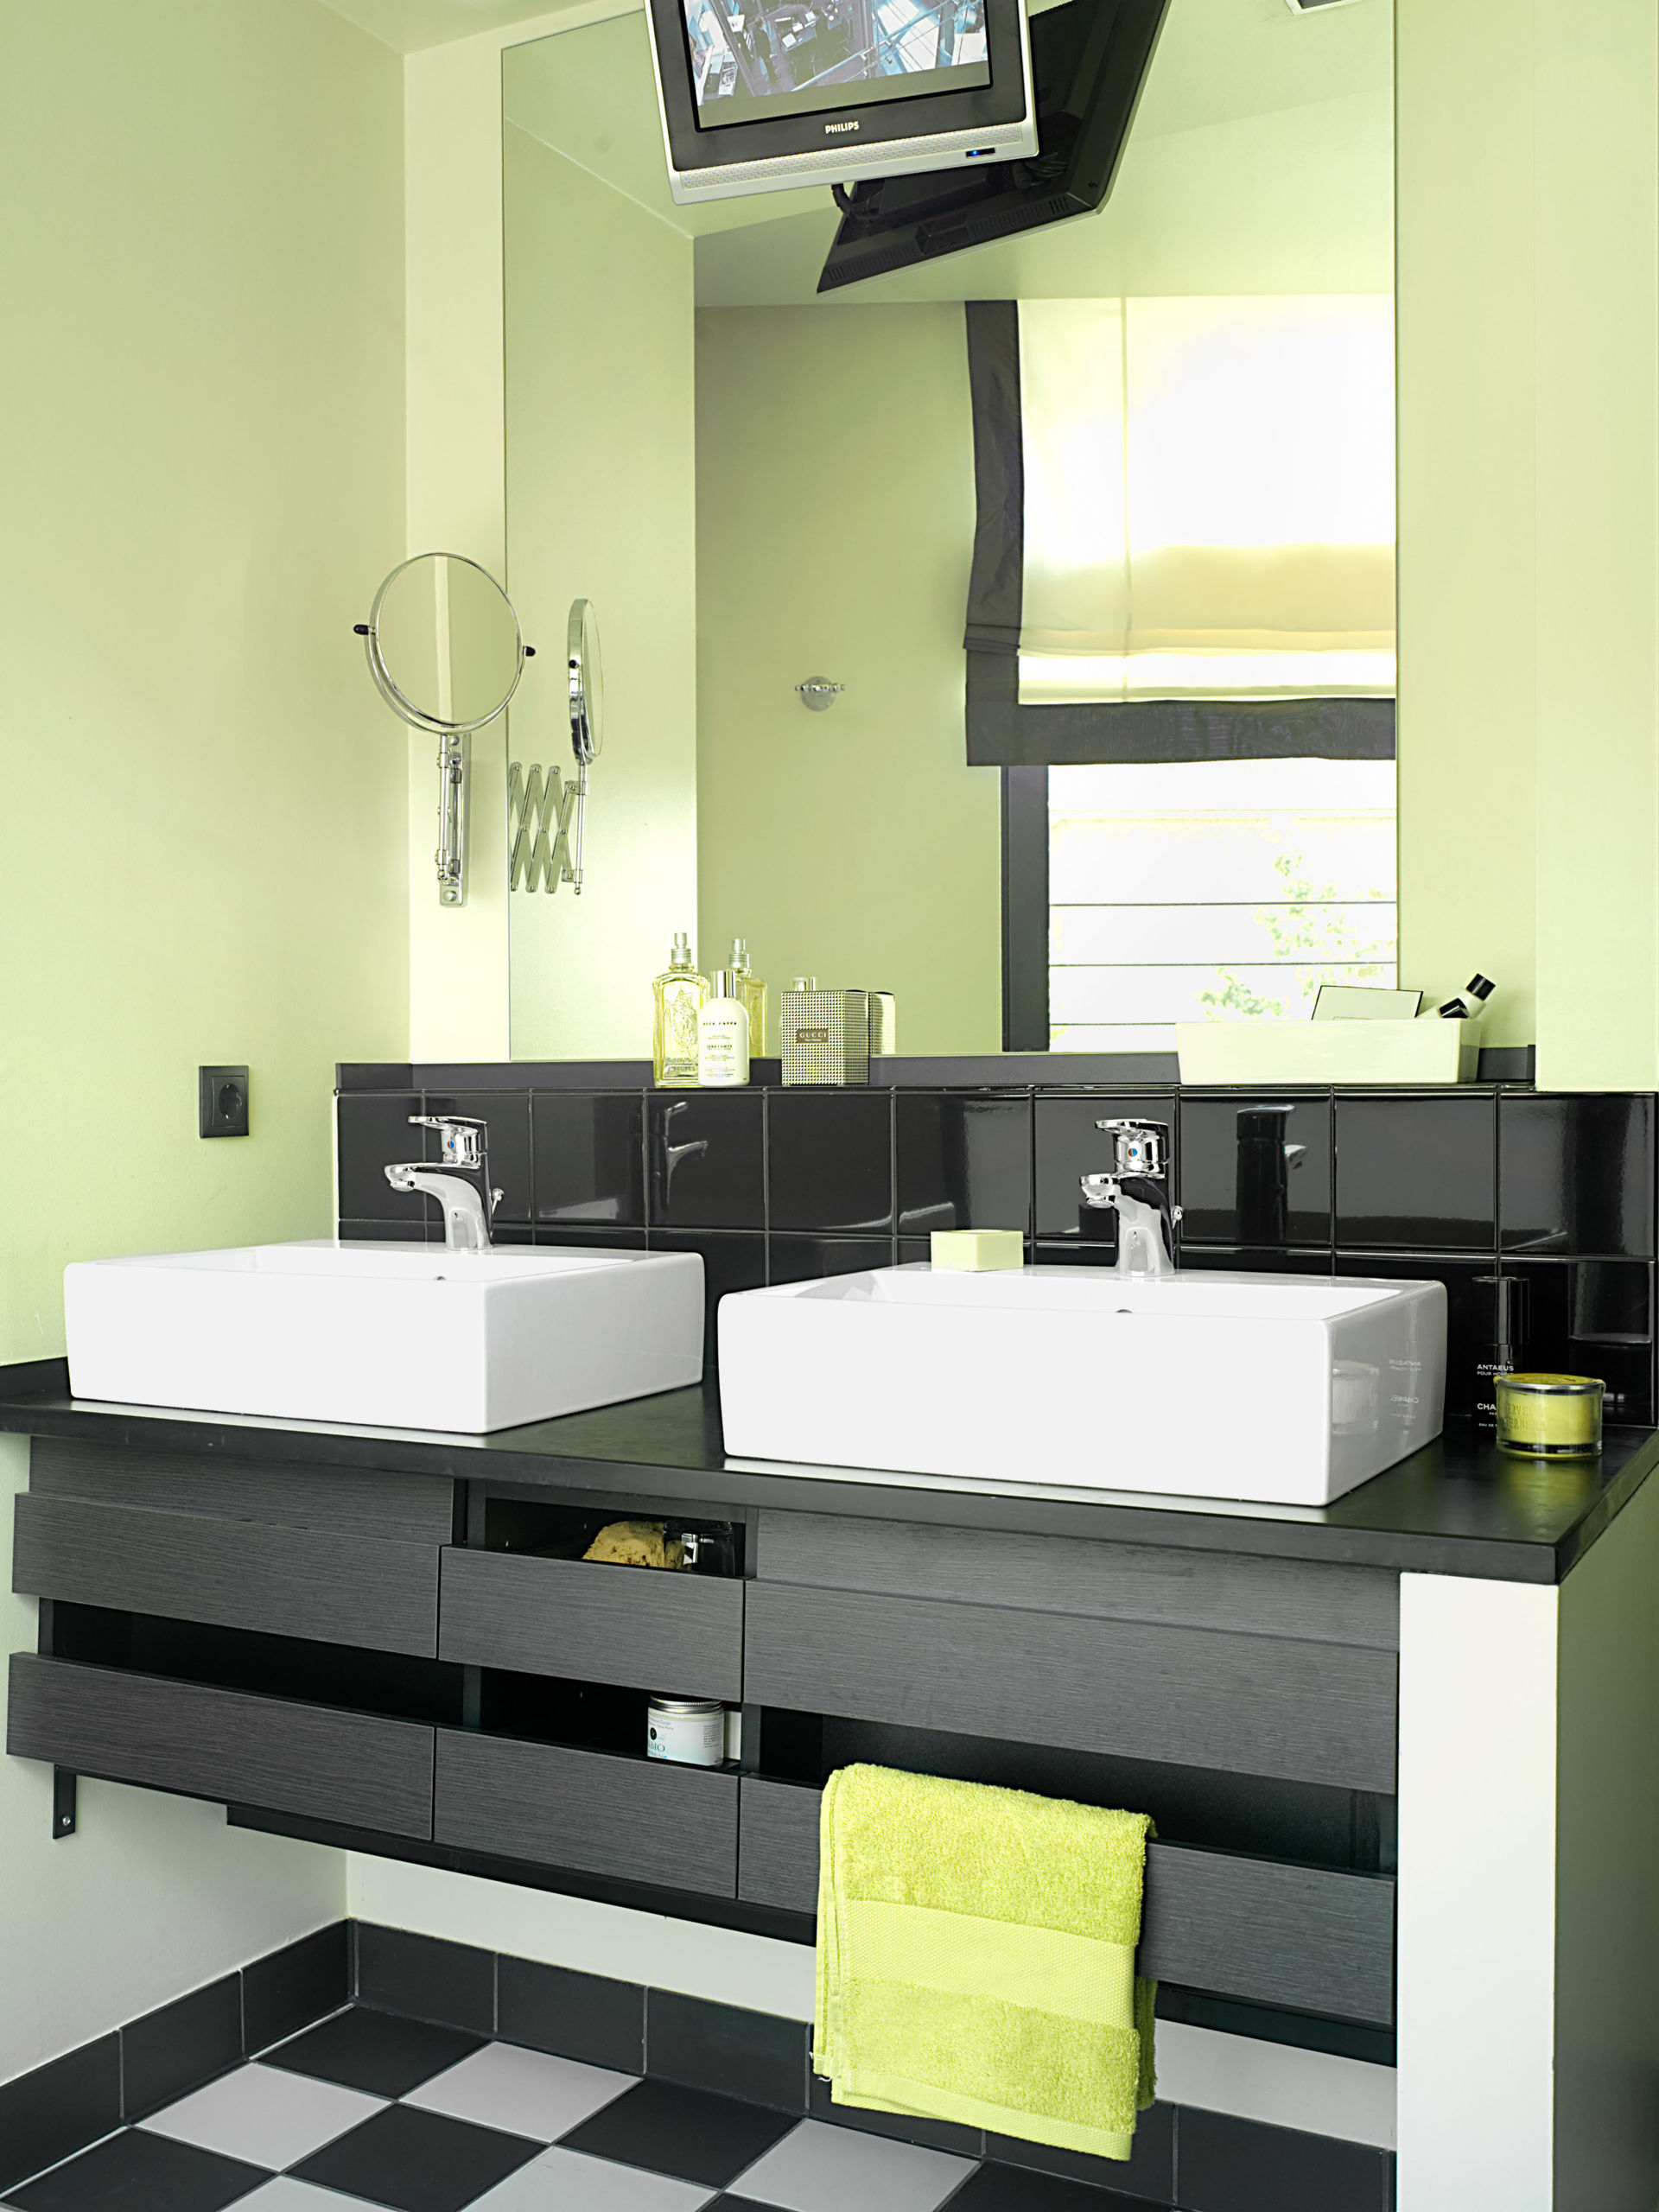 b der im hotel the george zuhause wohnen. Black Bedroom Furniture Sets. Home Design Ideas